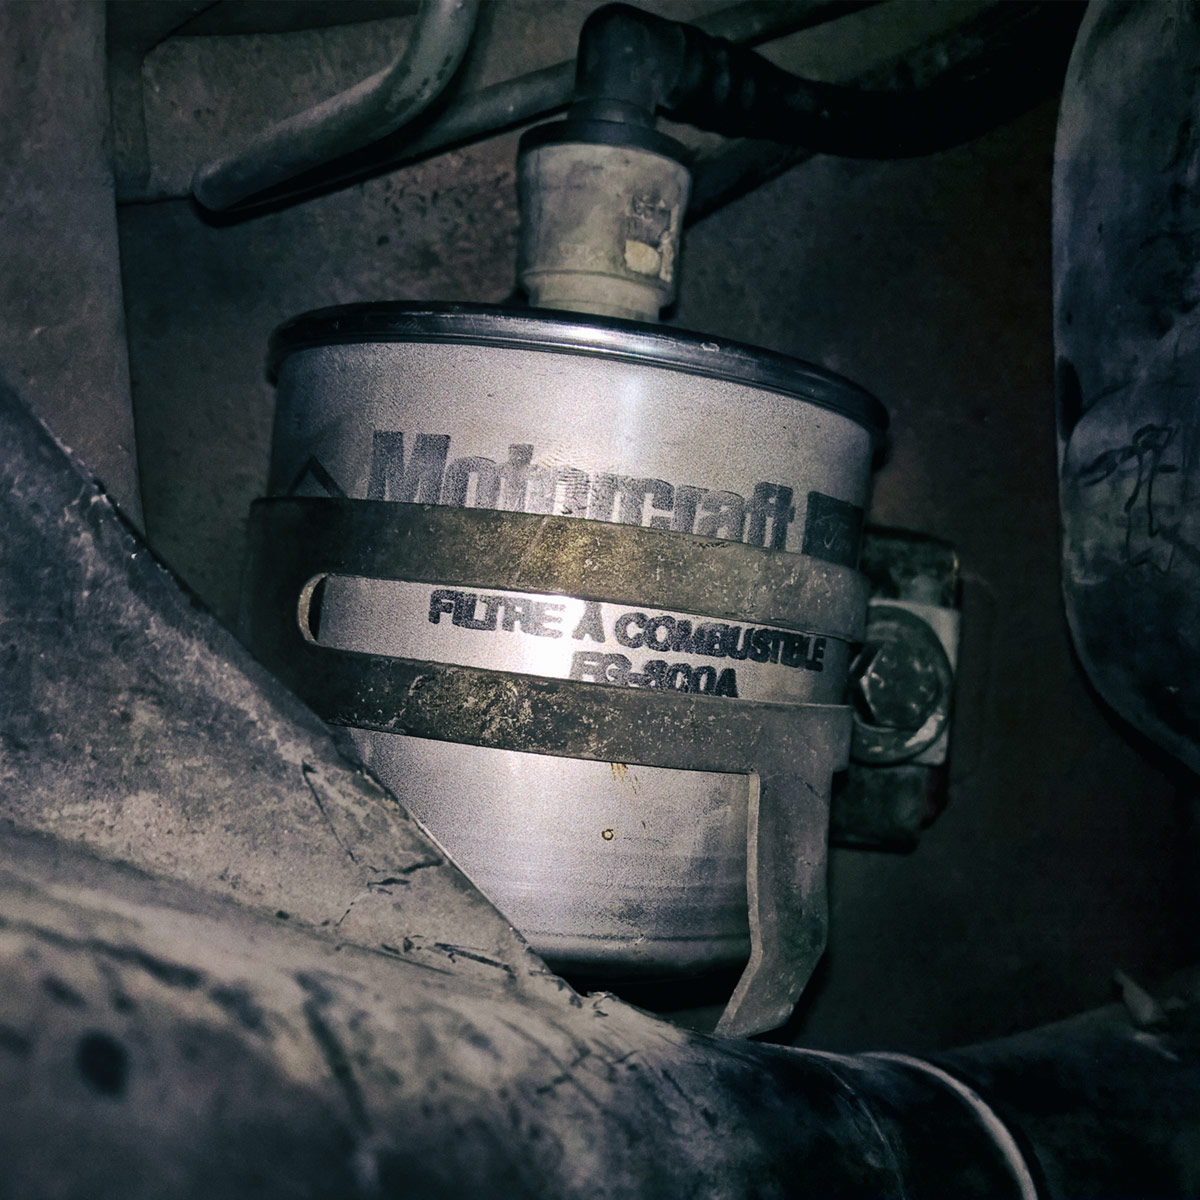 Mazda 40 Fuel filter replacement